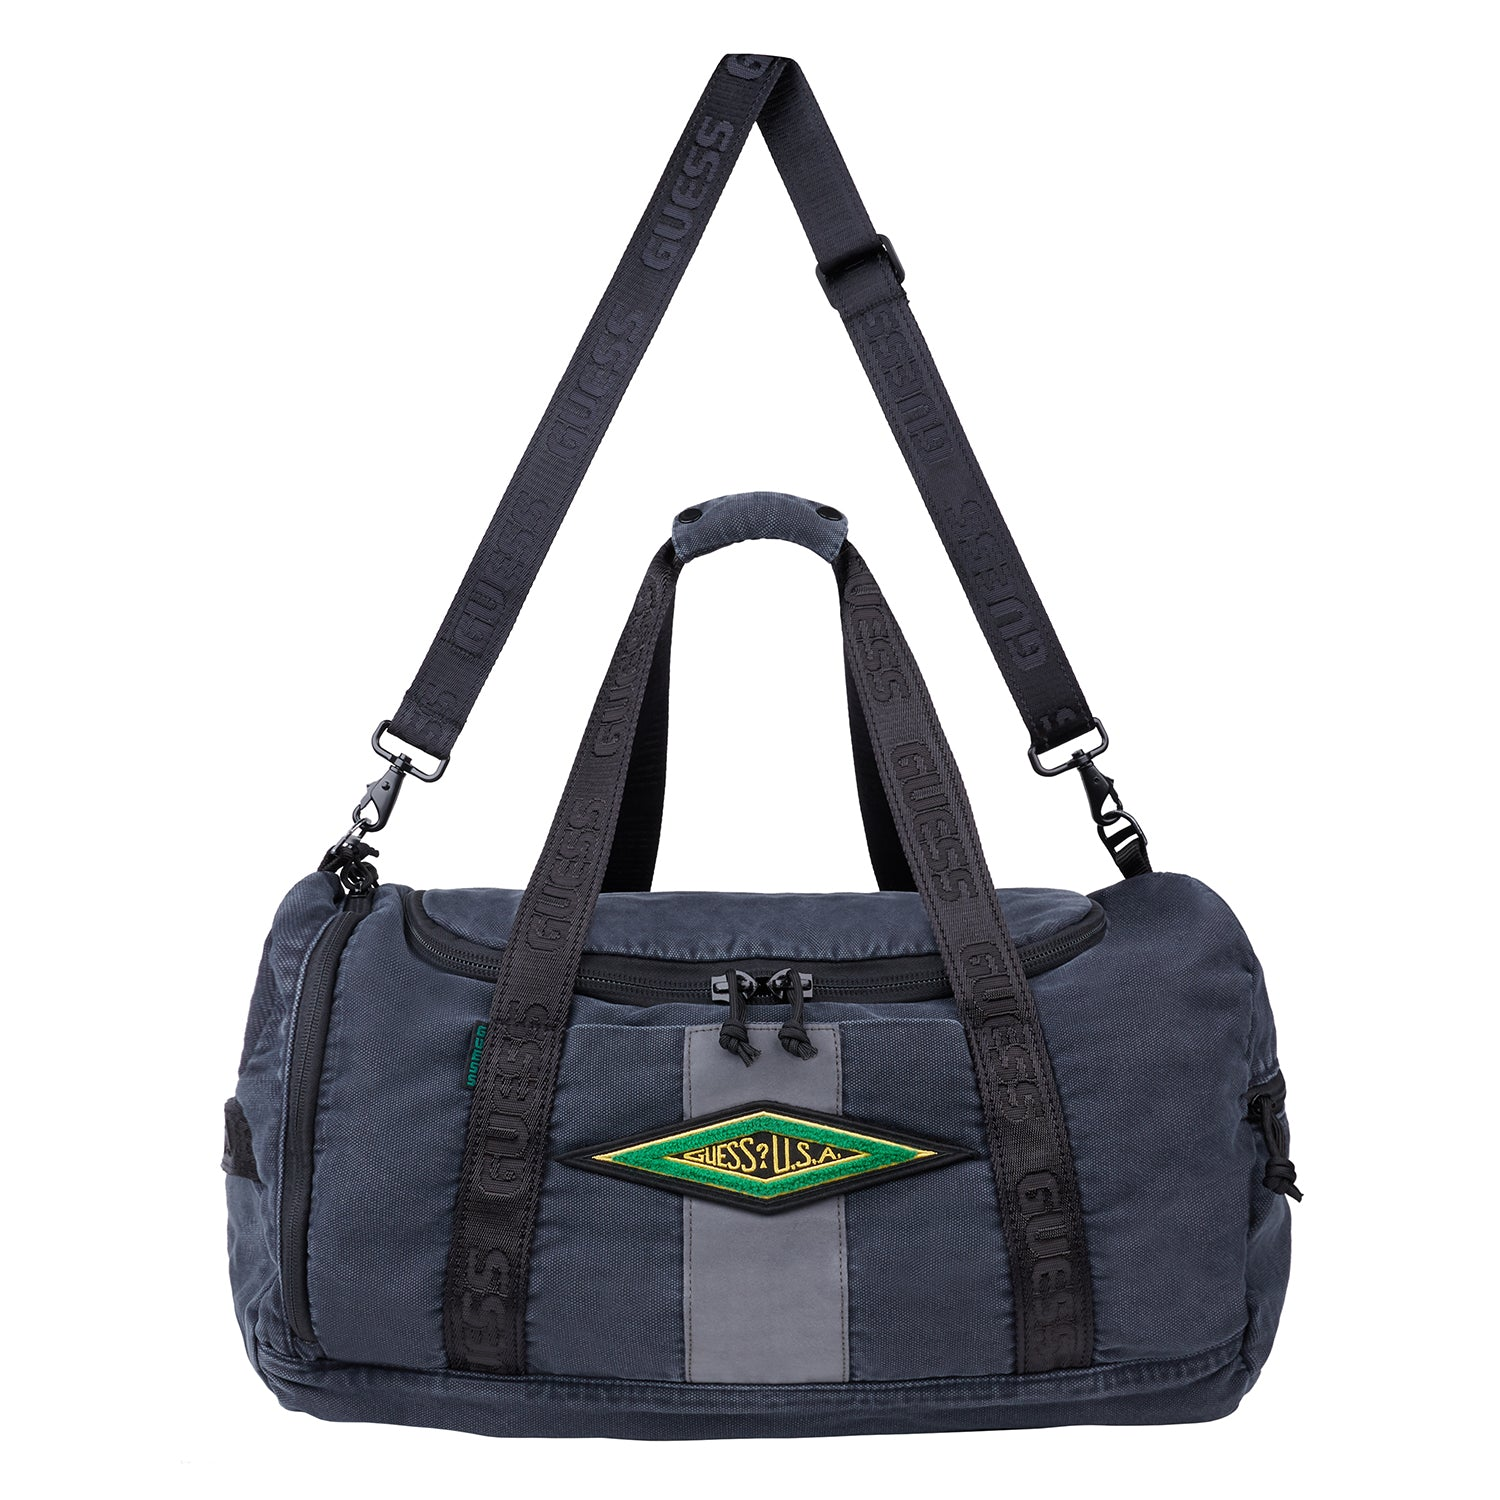 IA GUESS JEANS DUFFLE BAG (FADED NAVY)